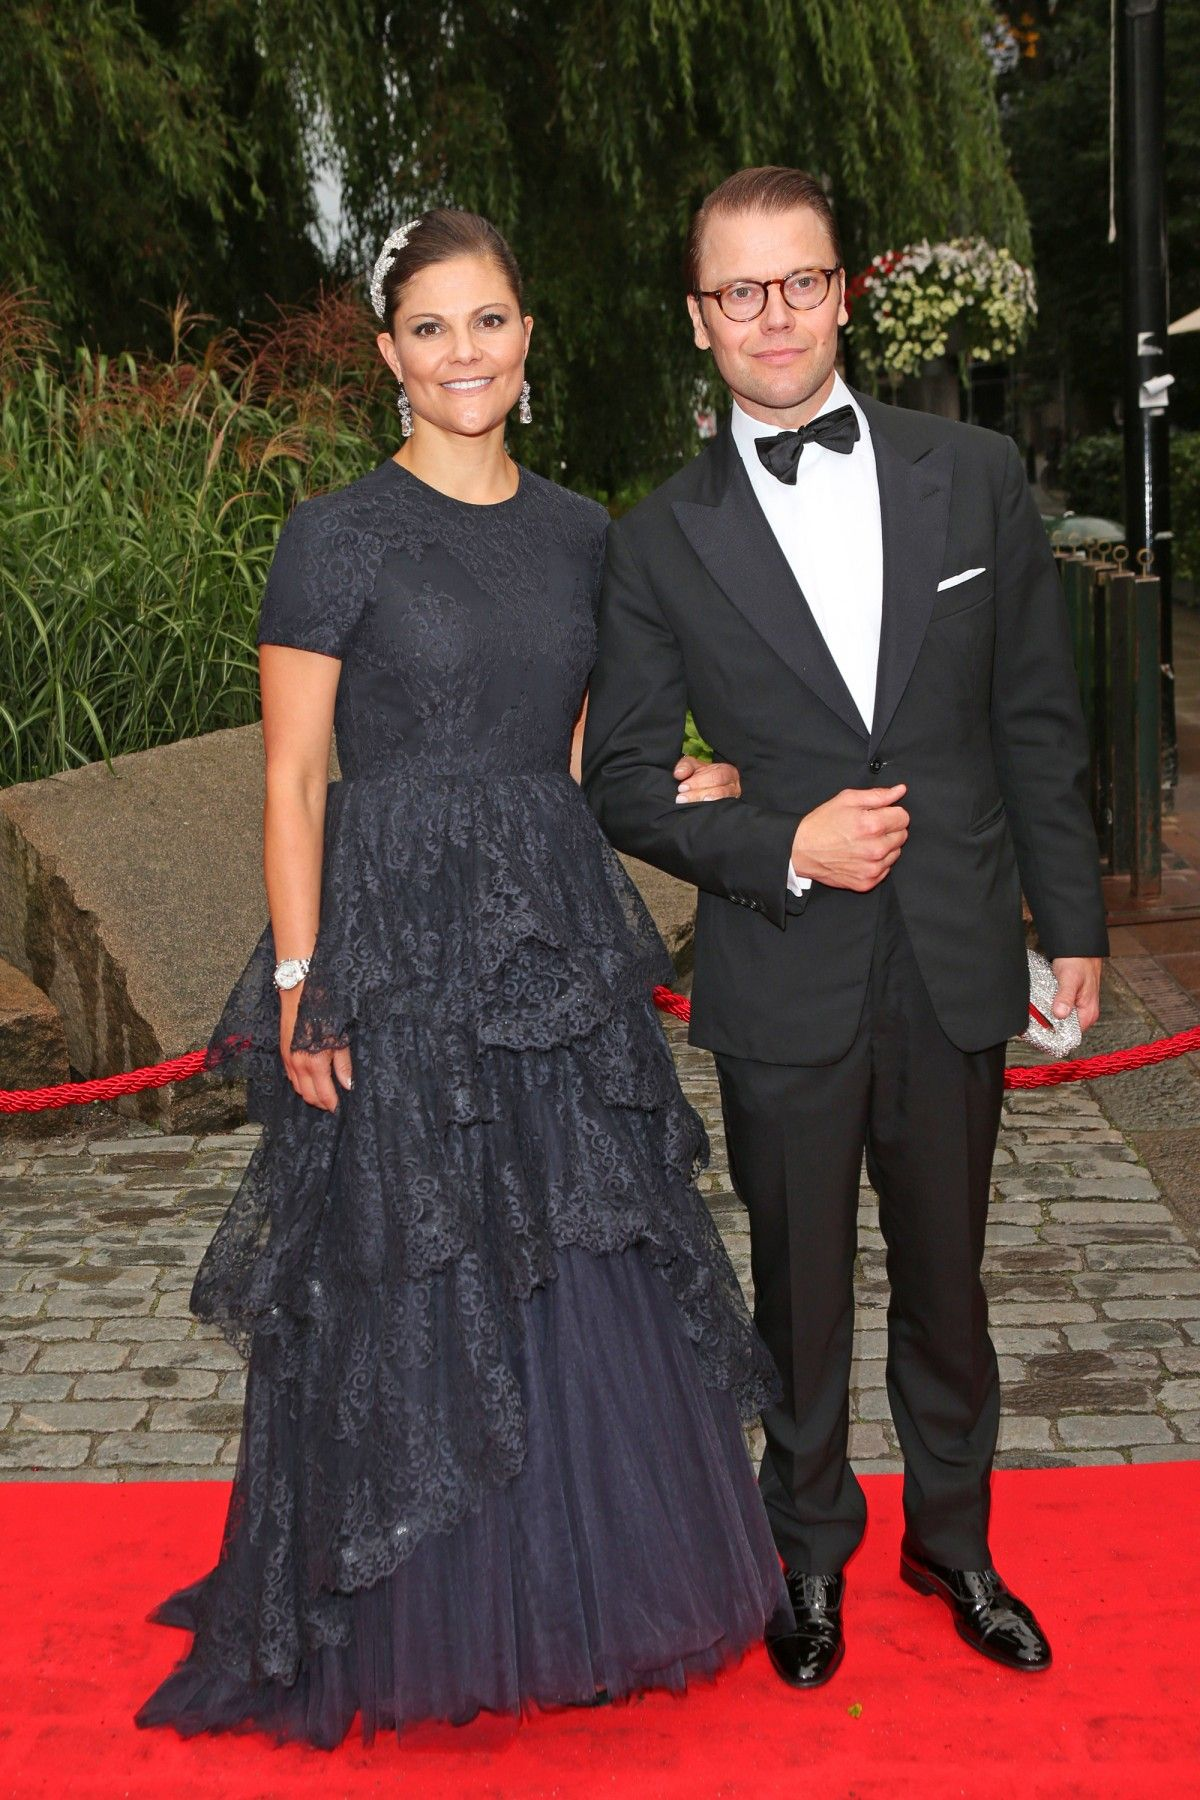 Crown Princess Victoria and Prince Daniel arrive at Berns